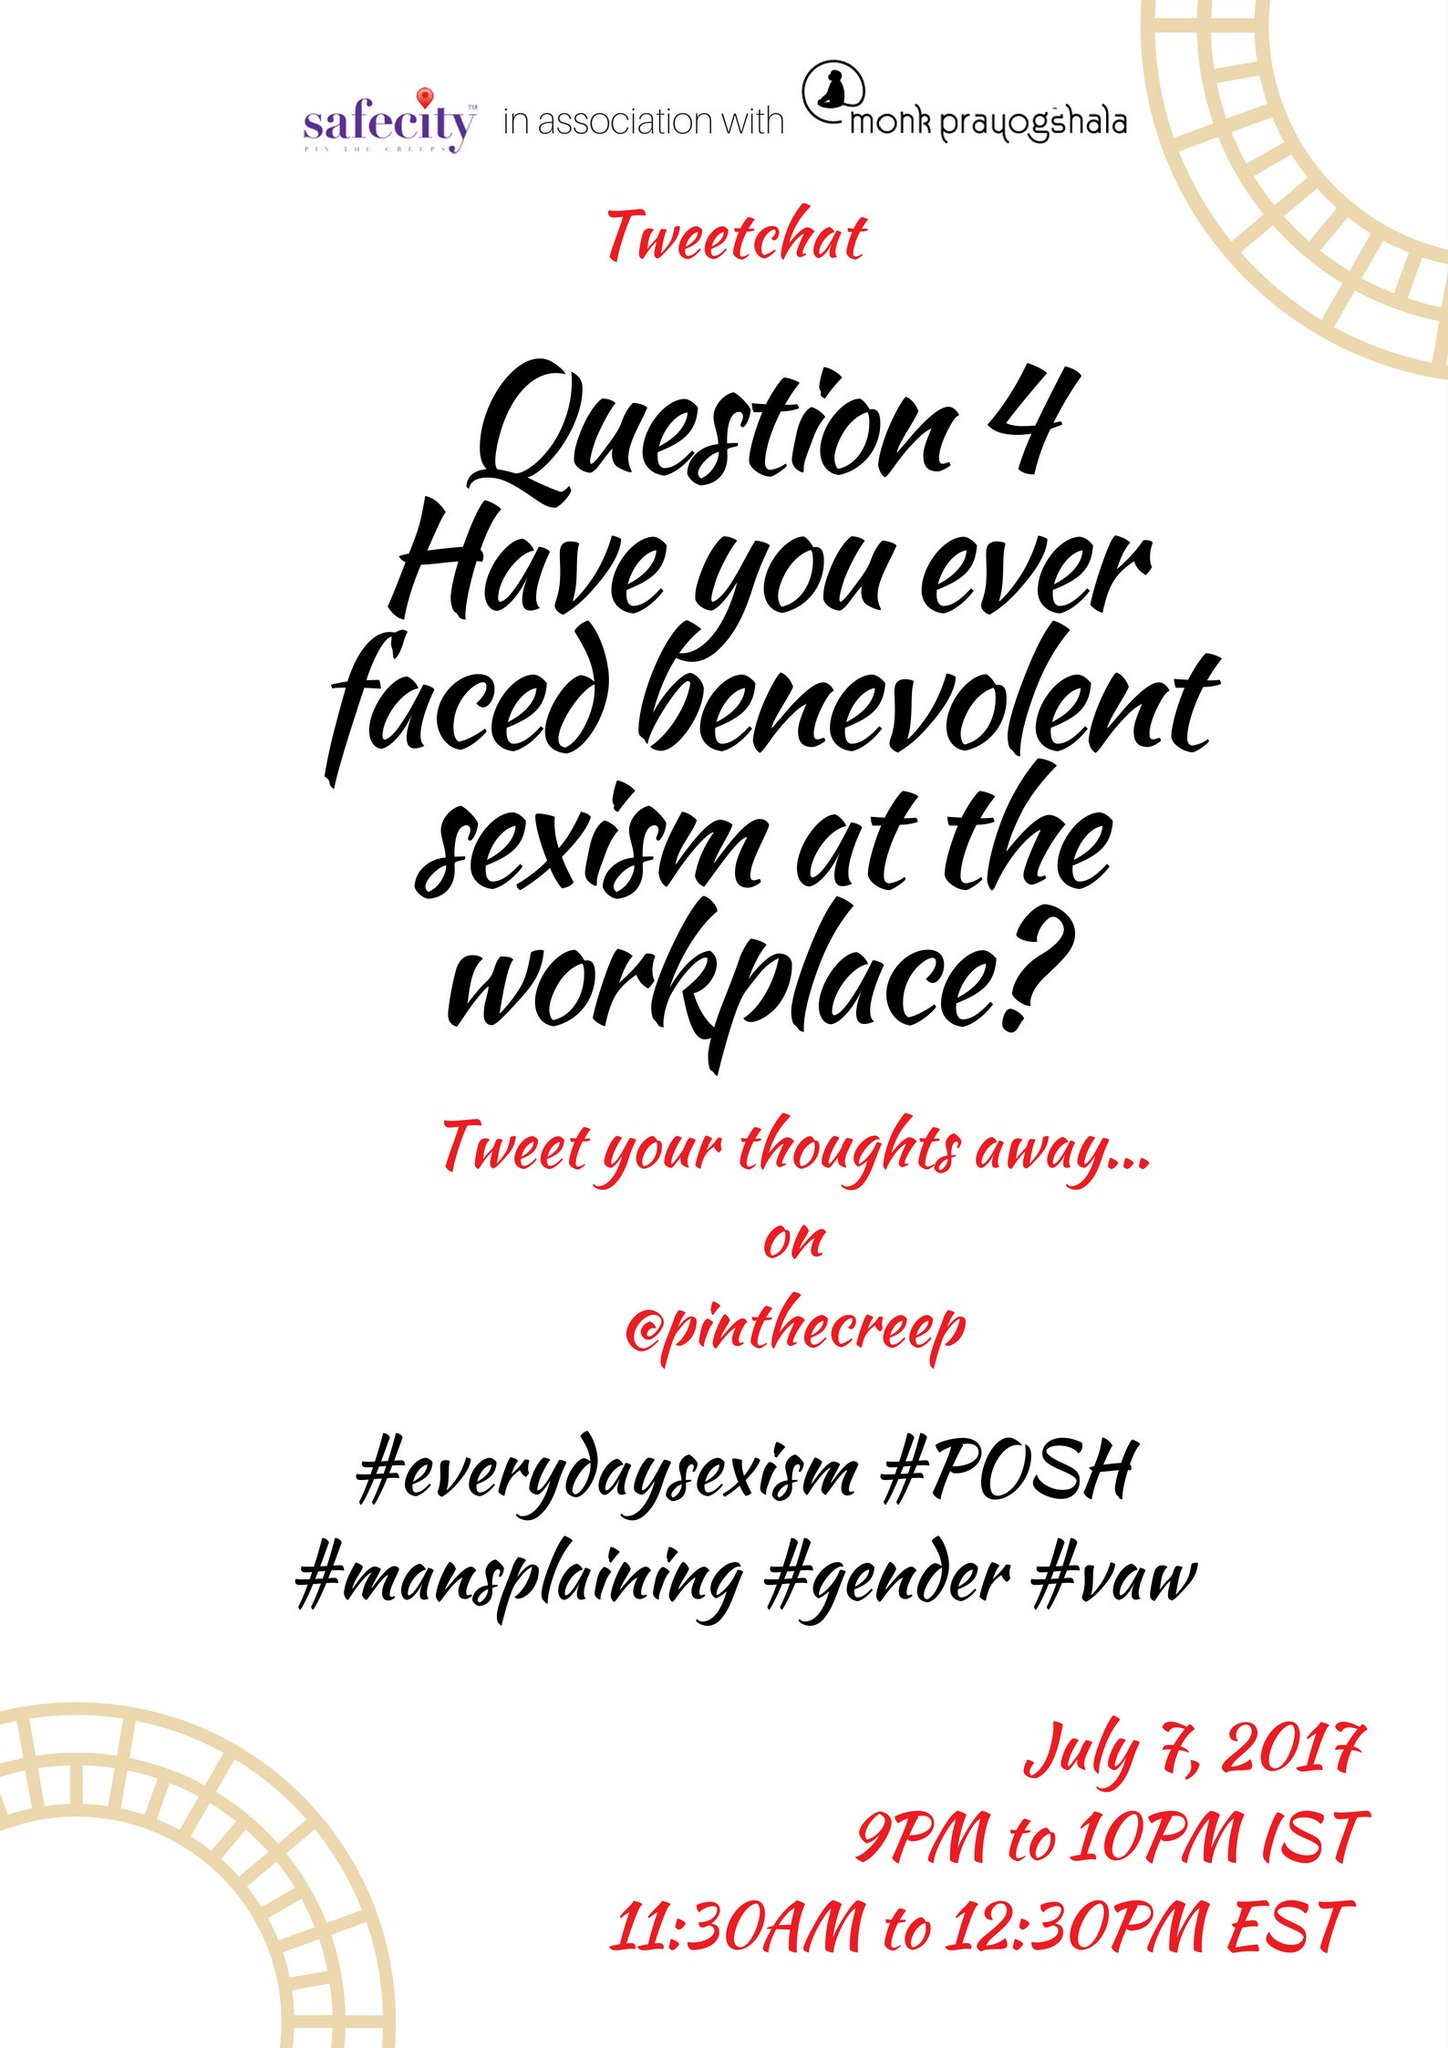 Continuing from our week's theme on #workplace sexual harassment, here is Q4: #everydaysexism #VAW https://t.co/VZrAX8R84t